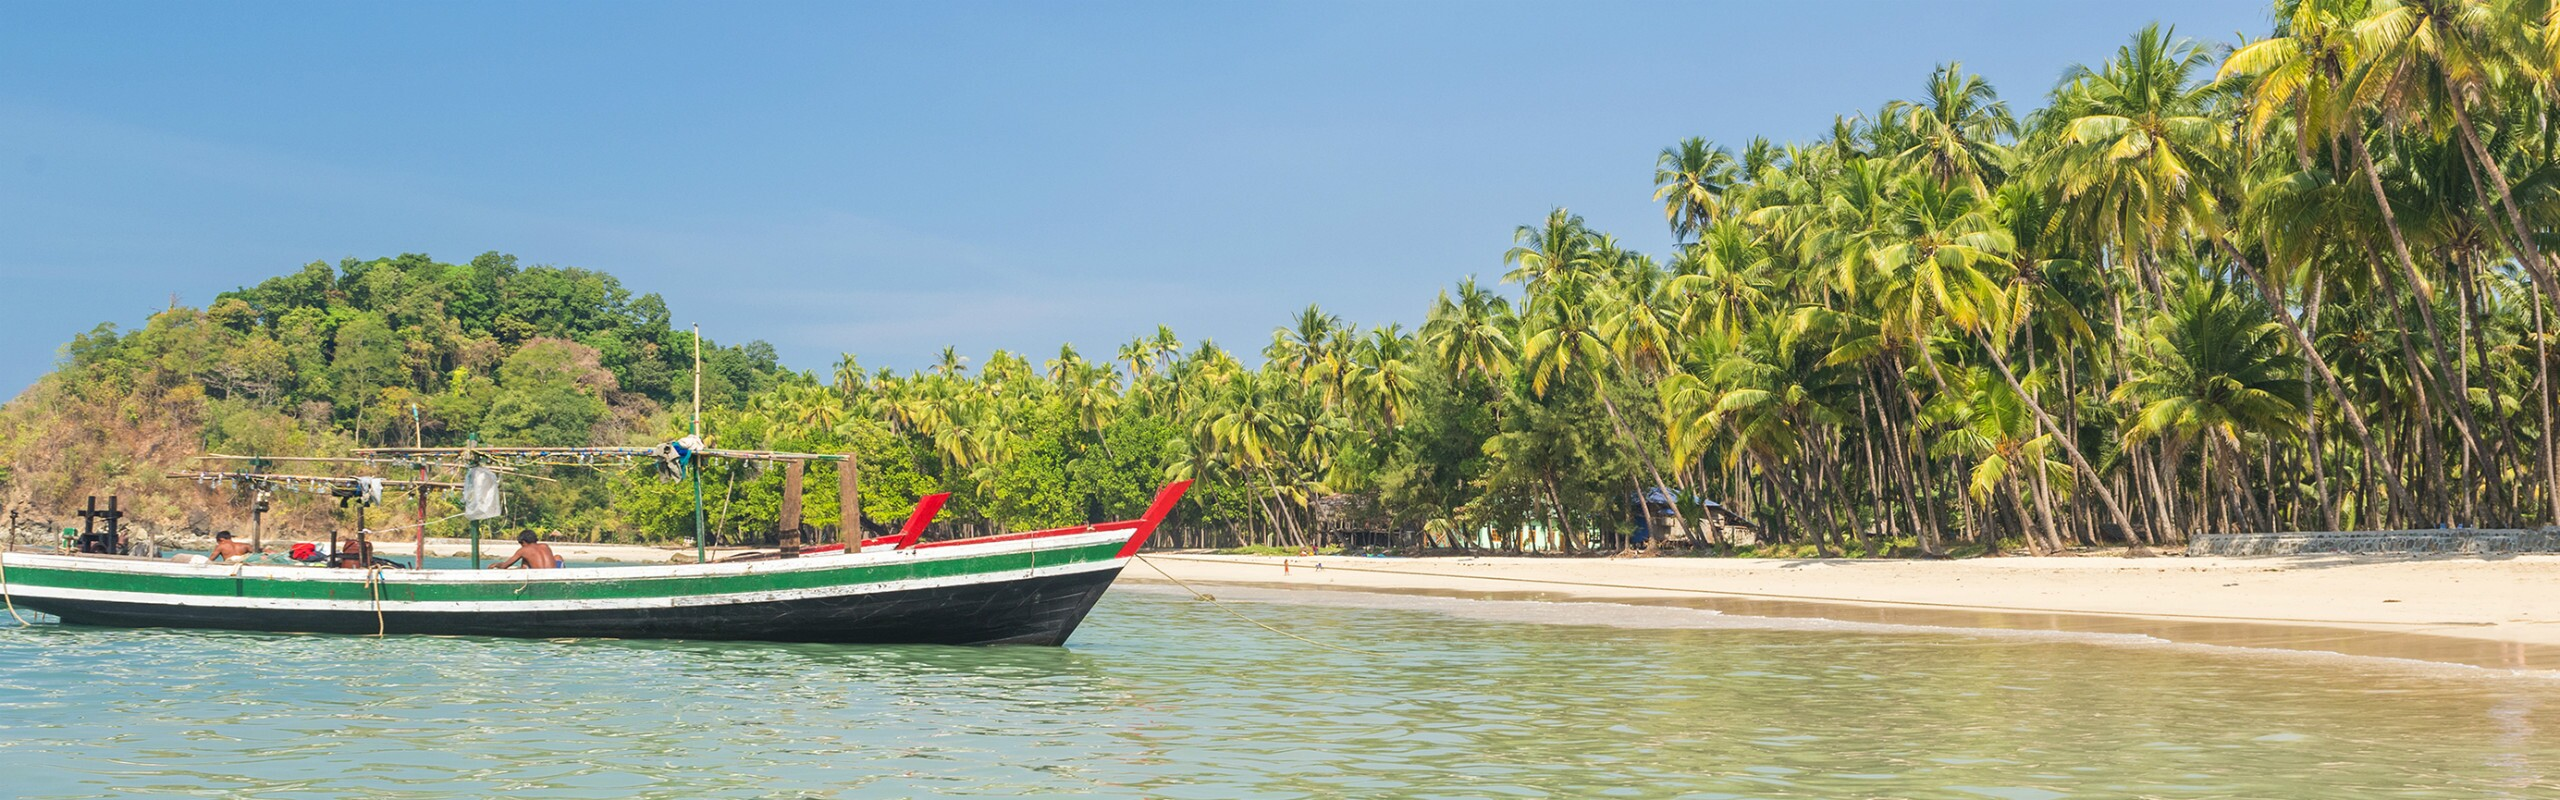 Top Beaches in Myanmar - Ngapali Beach Comes First